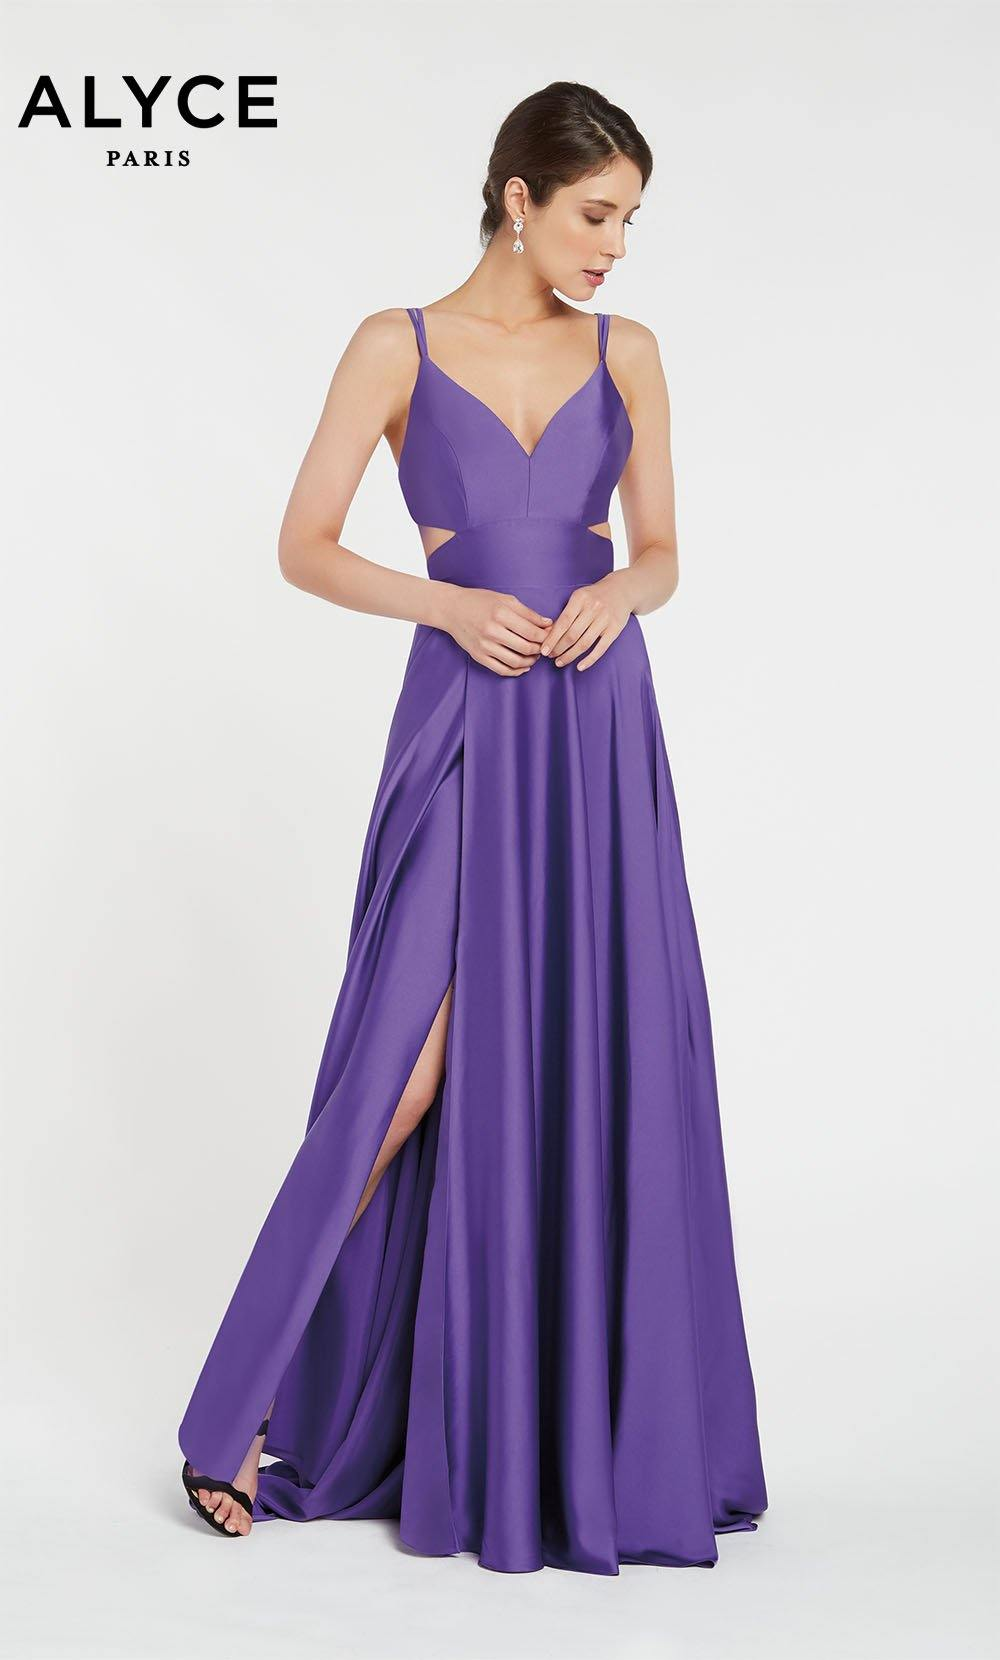 Purple flowy satin chiffon prom dress with a V neck, side cutouts, and front slit